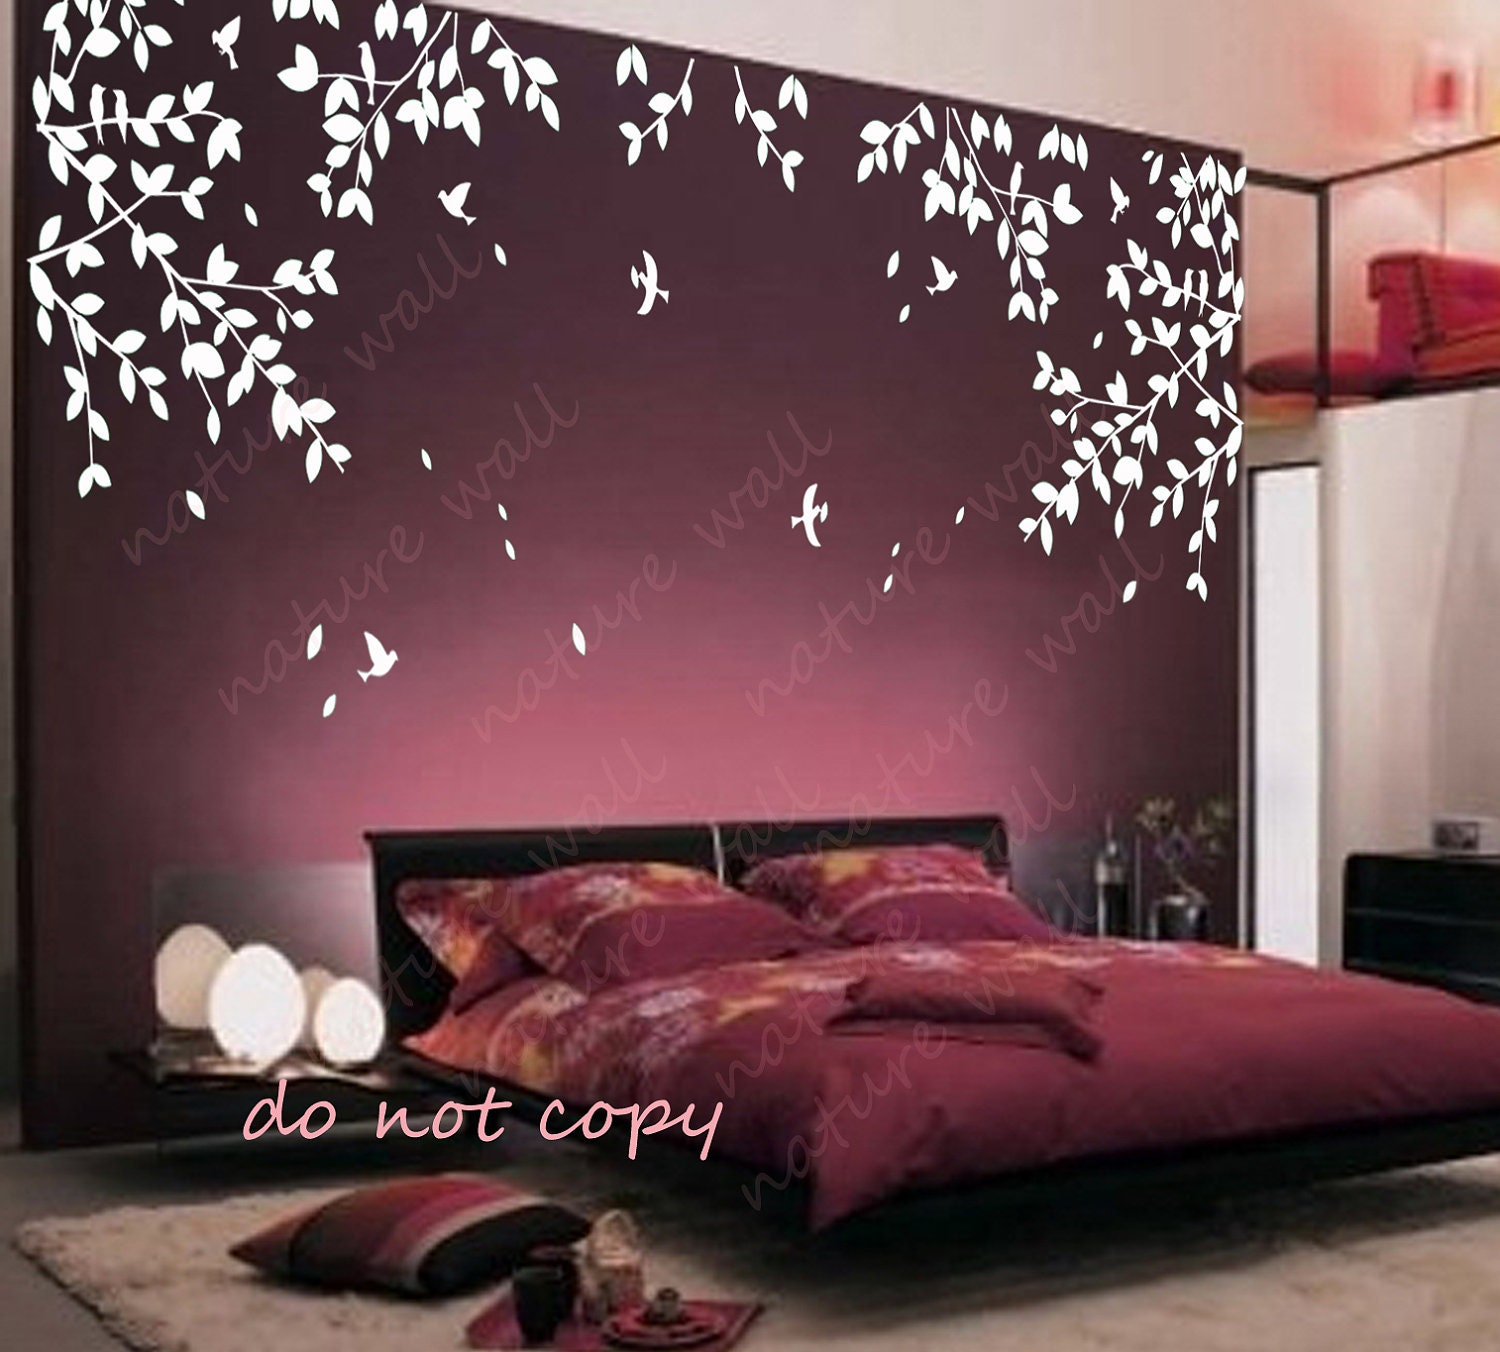 wall decor made from branches interior decorating. Black Bedroom Furniture Sets. Home Design Ideas